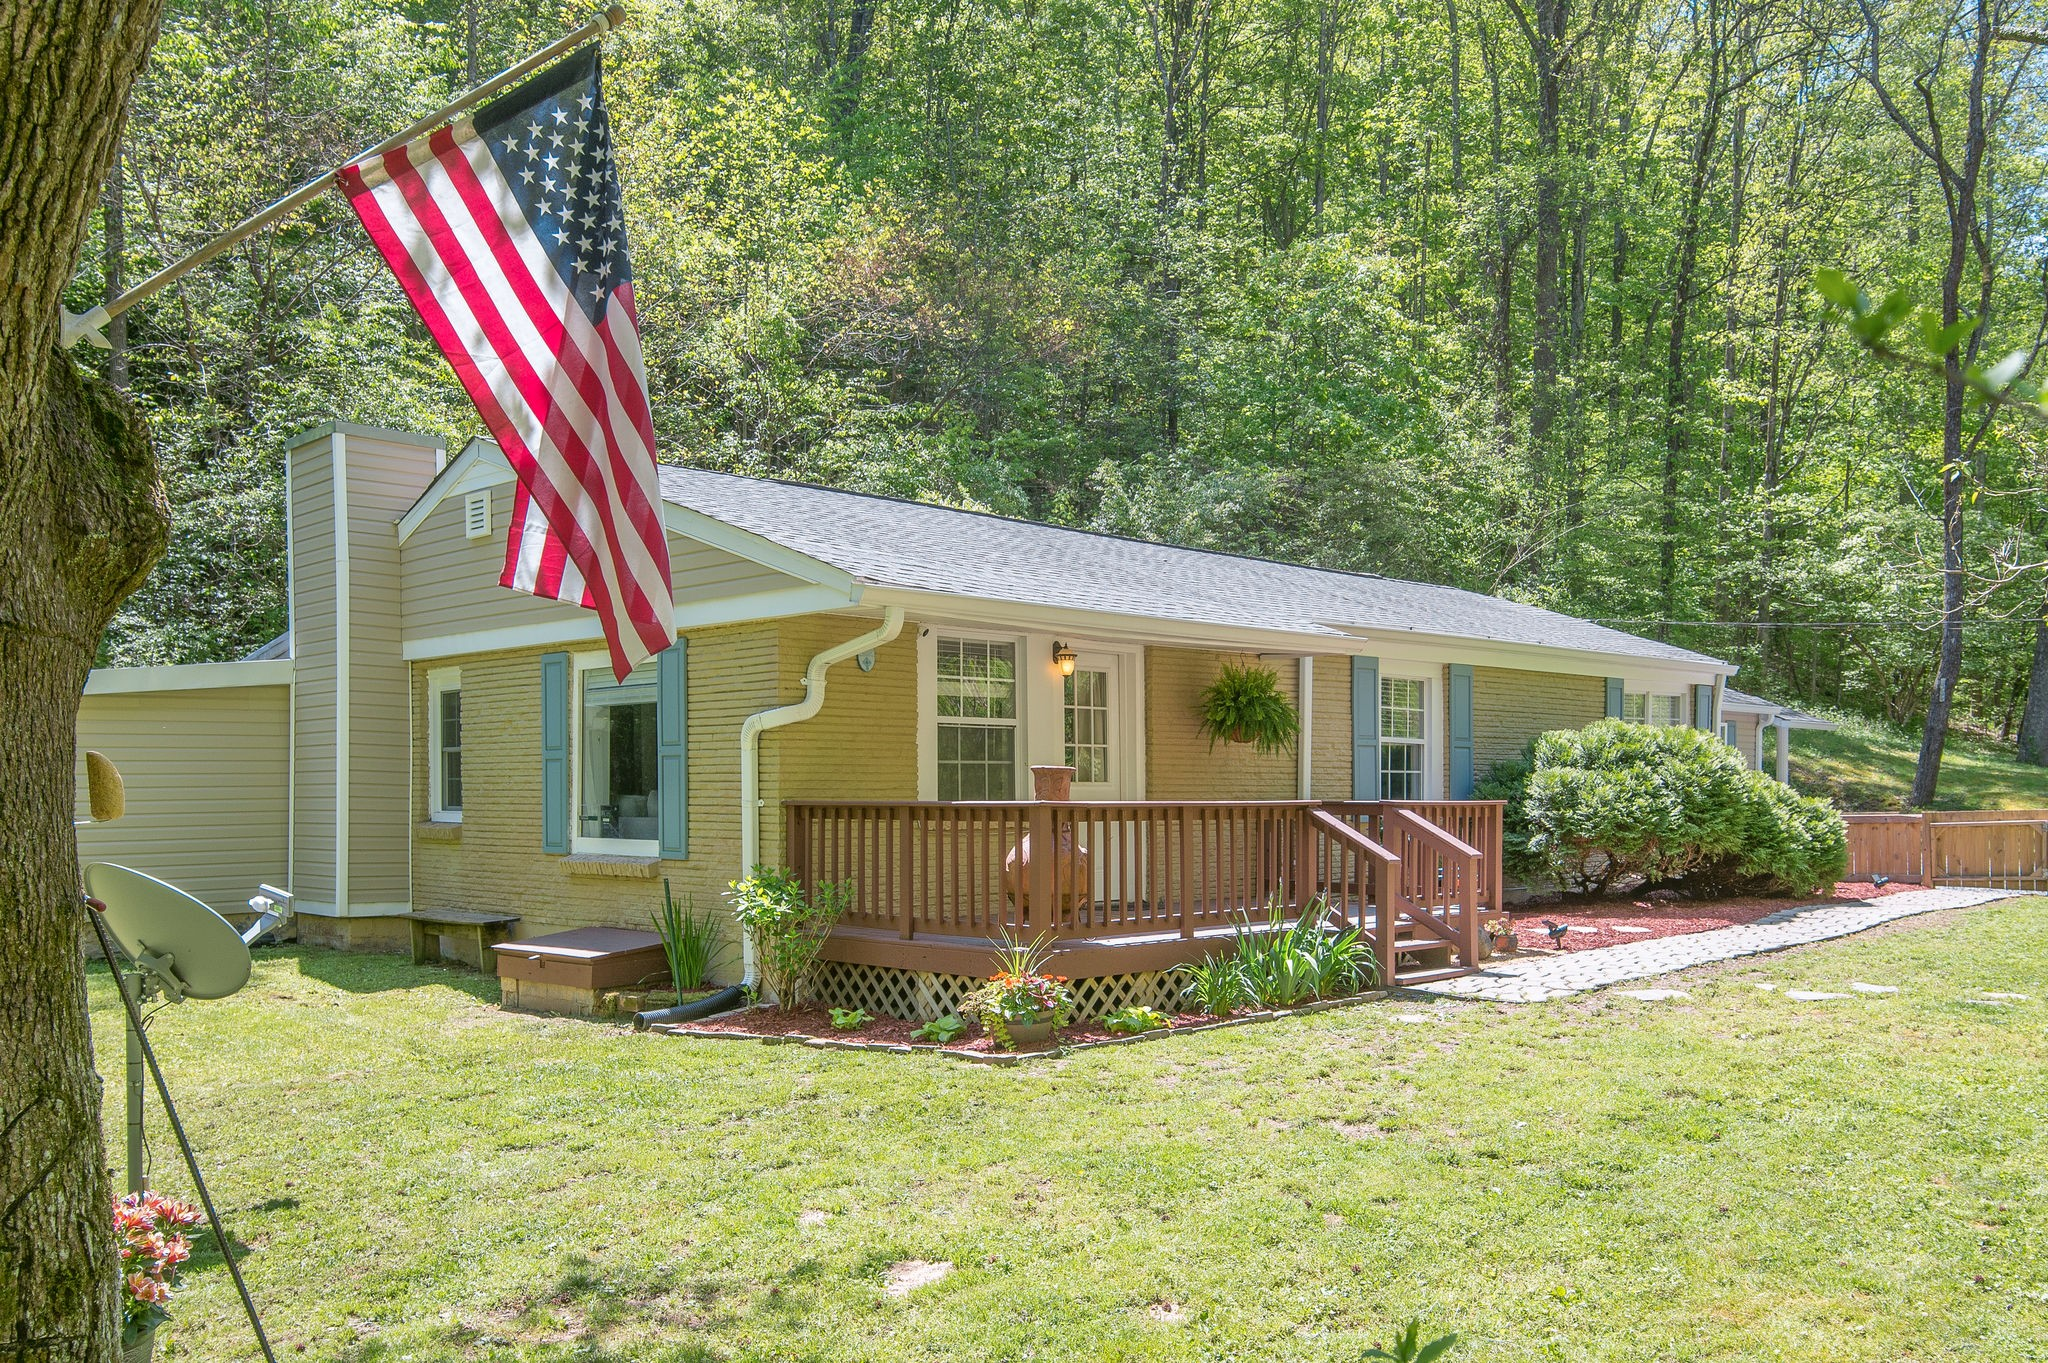 4188 Pond Creek Rd, Pegram, TN 37143 - Pegram, TN real estate listing